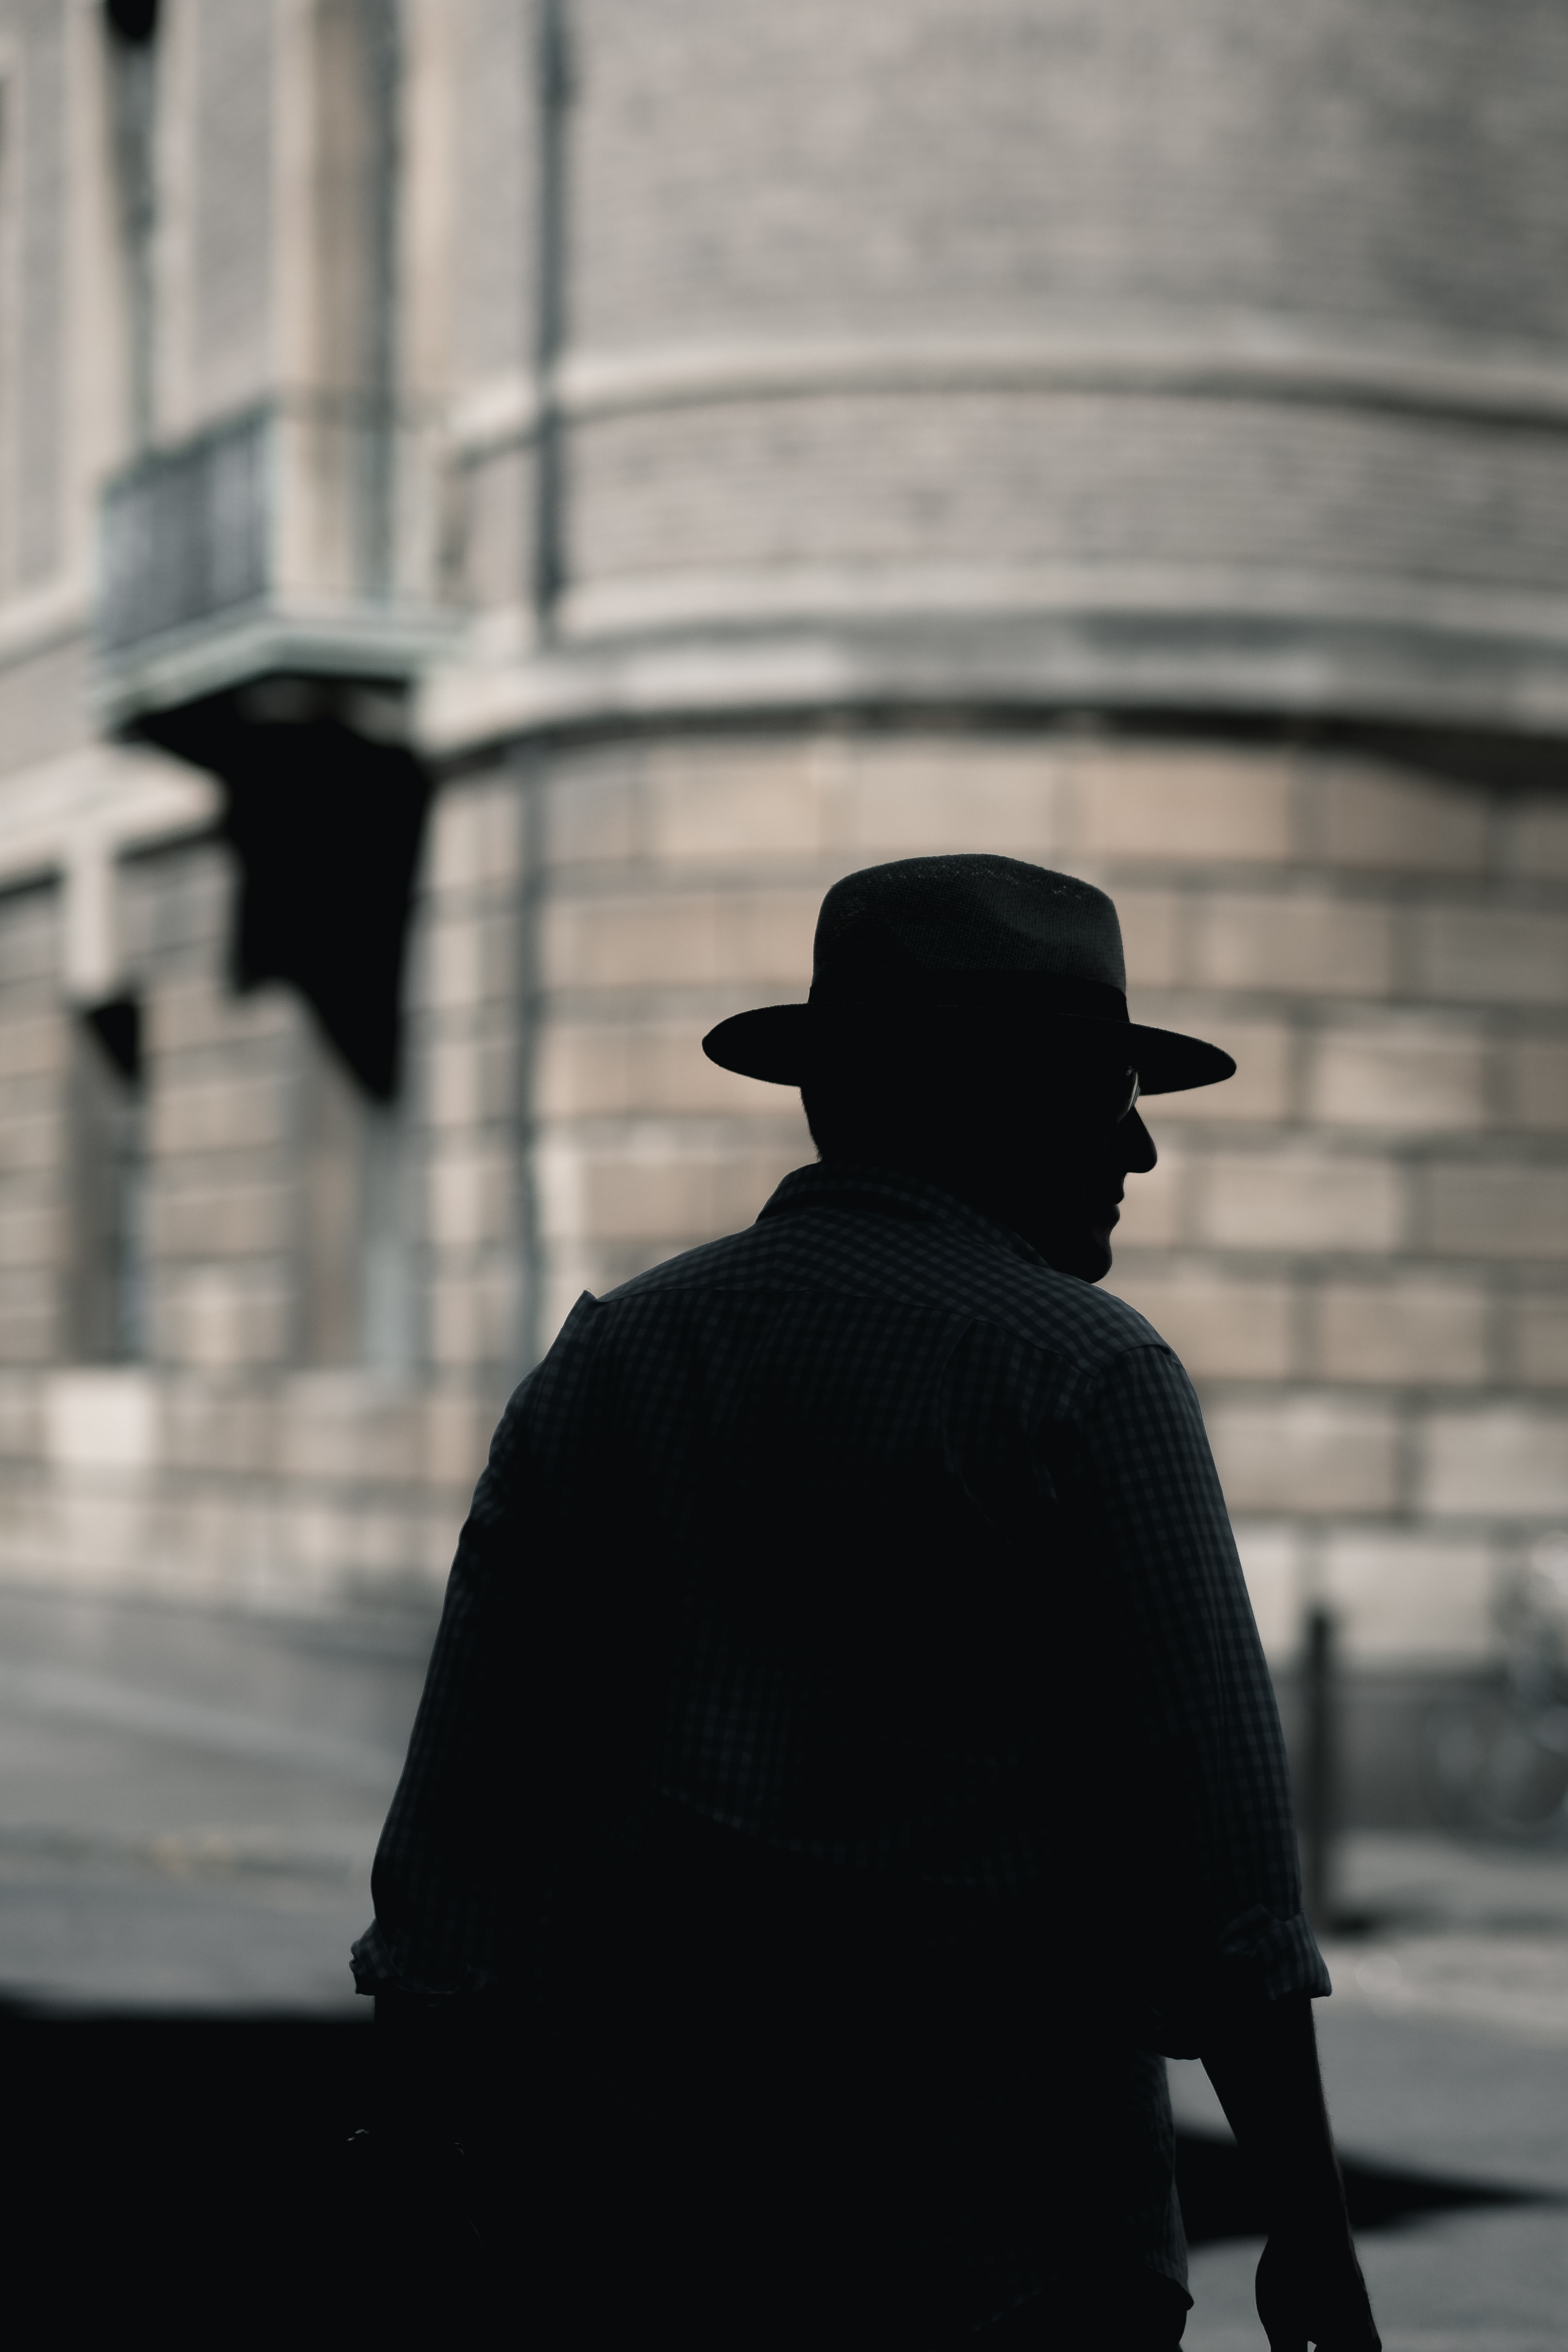 silhouette photo of a man with hat standing near concrete building at daytime